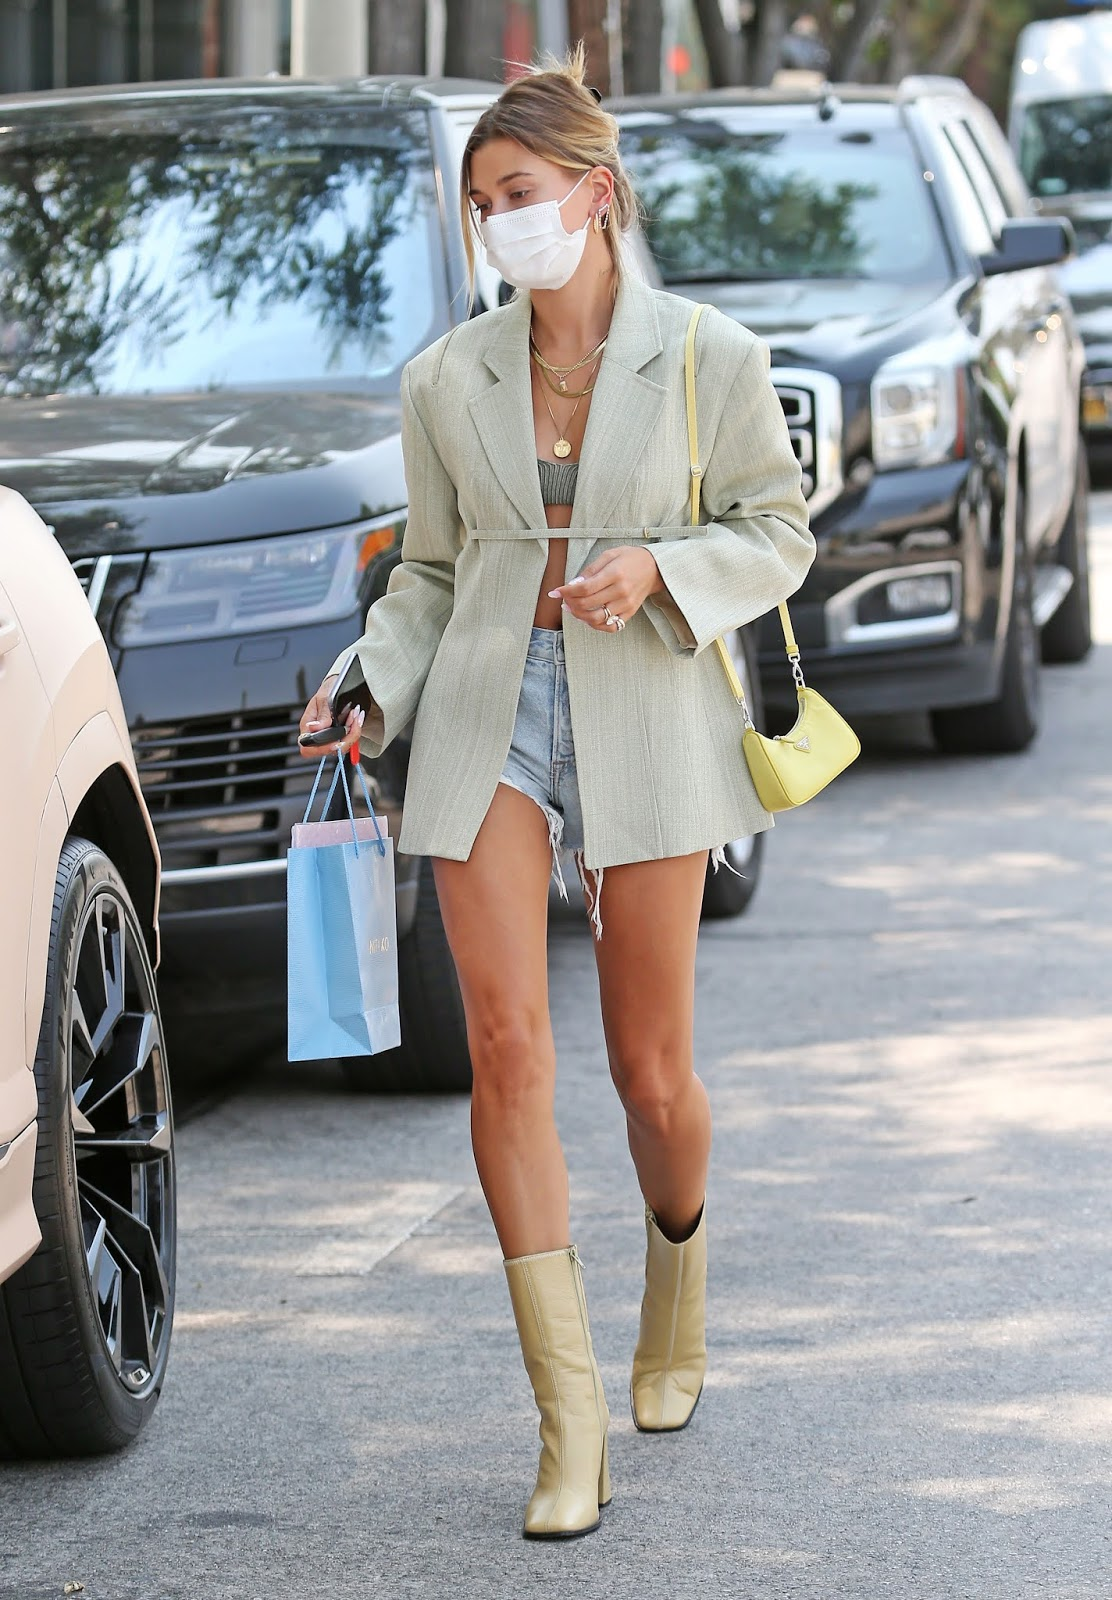 Hailey Bieber Makes Neutrals Look Effortless